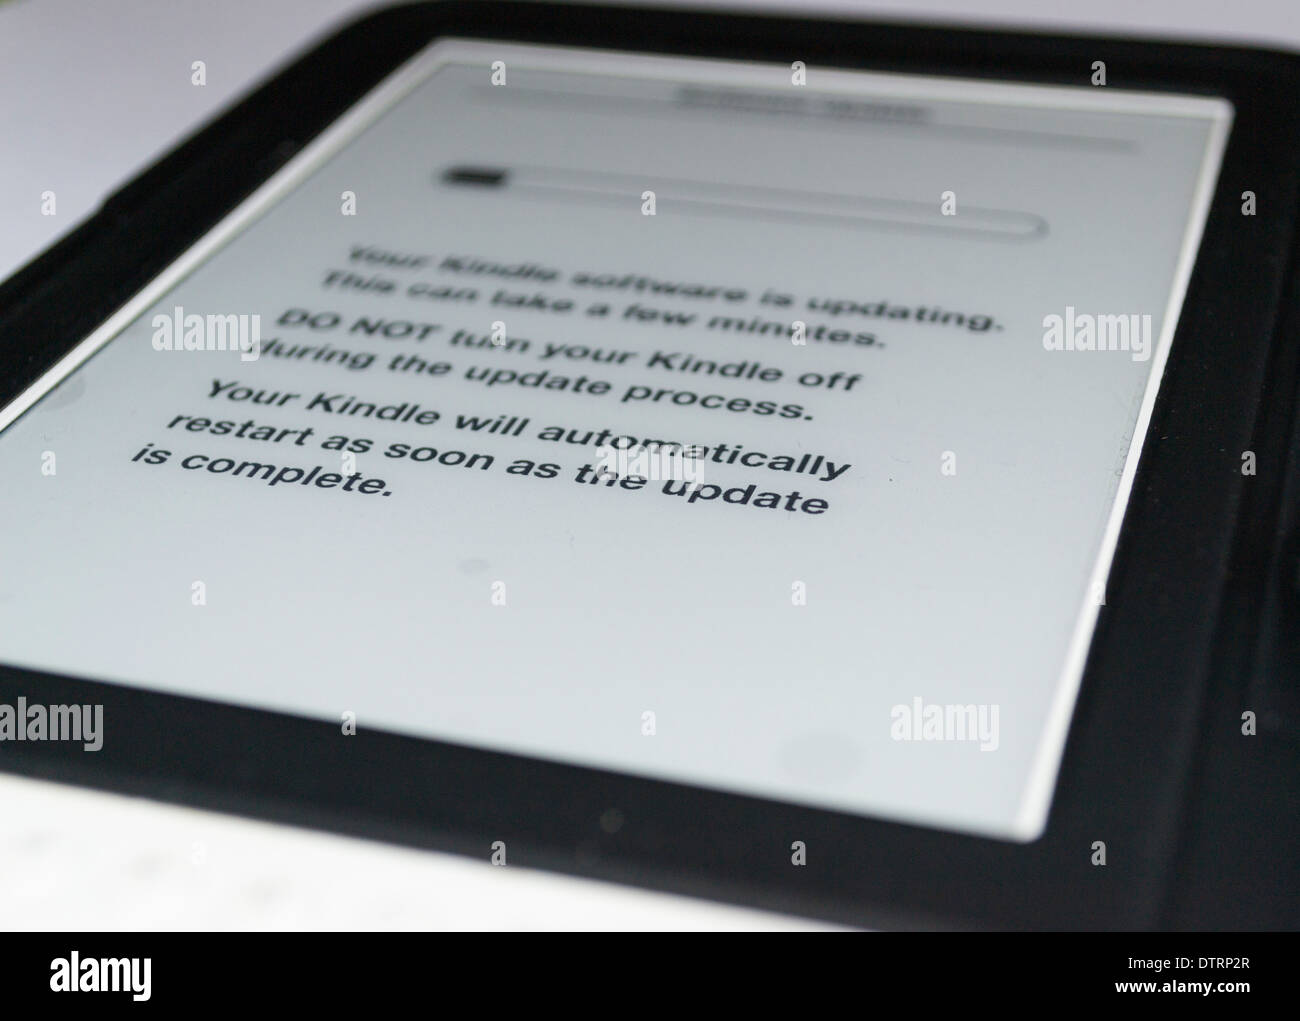 Kindle Keyboard 3 upgrade Stock Photo: 66905071 - Alamy